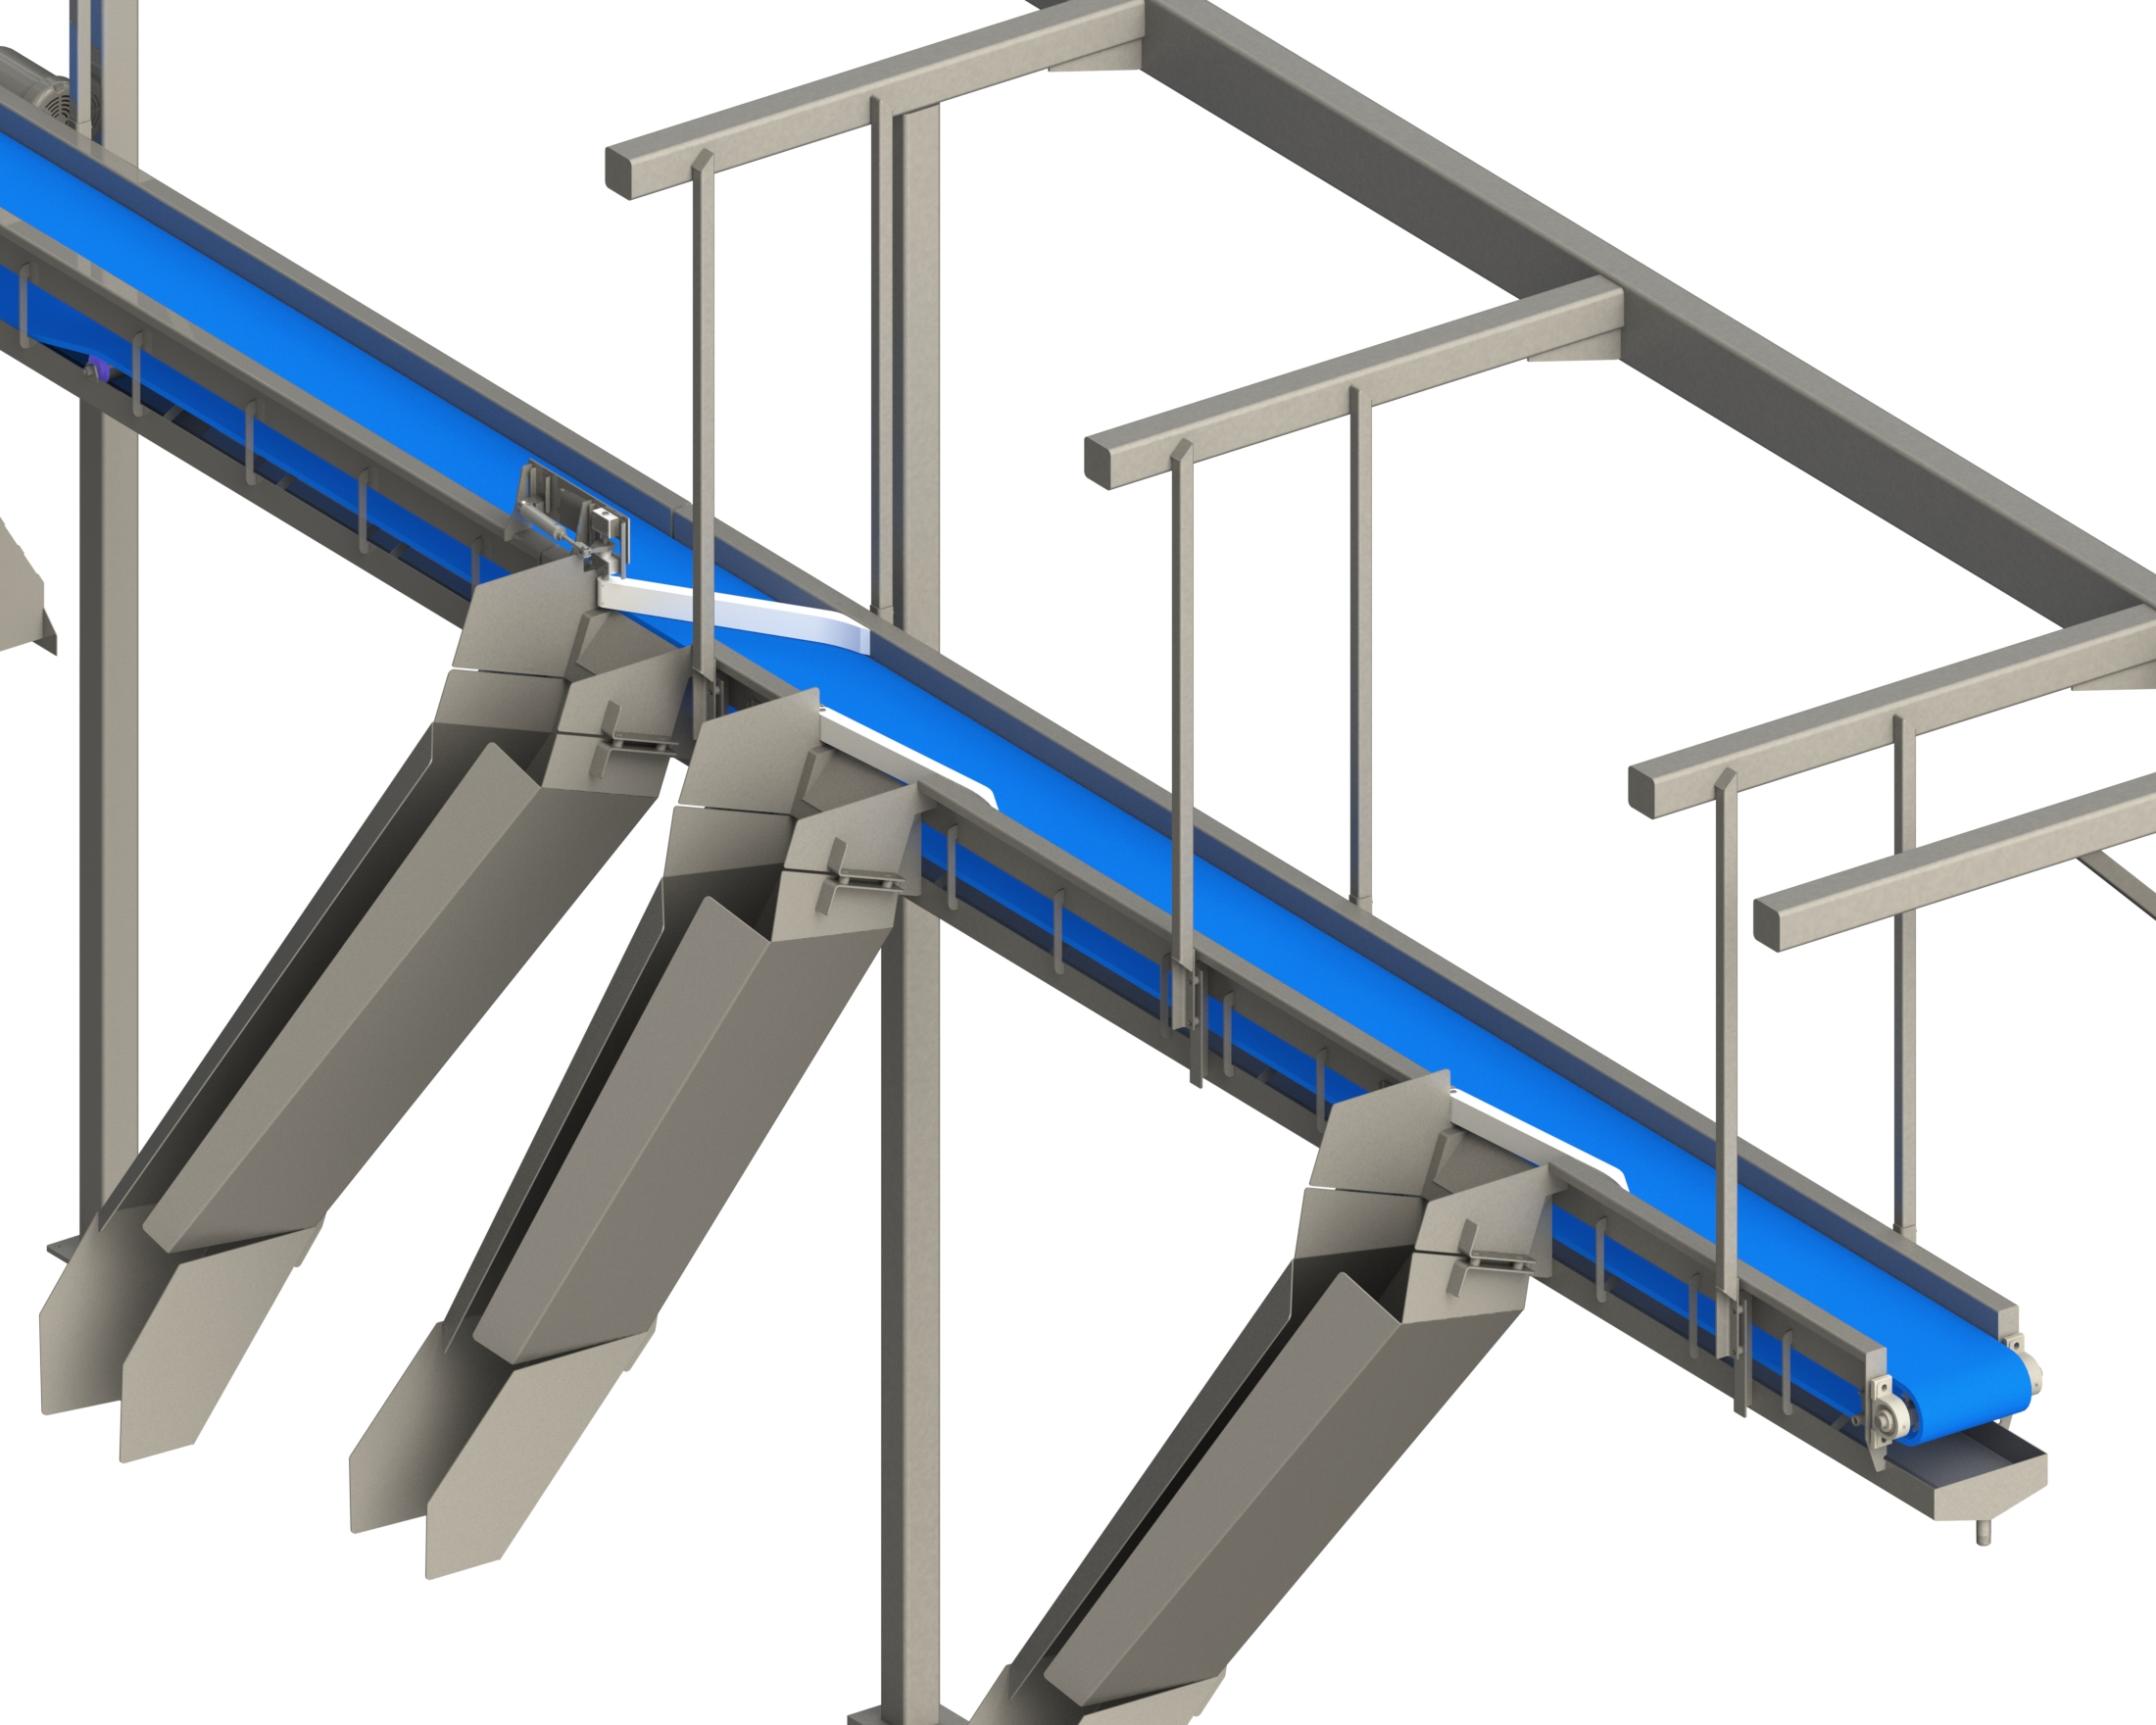 Stone custom overhead diverter conveyor for the food processing industry saves floor space